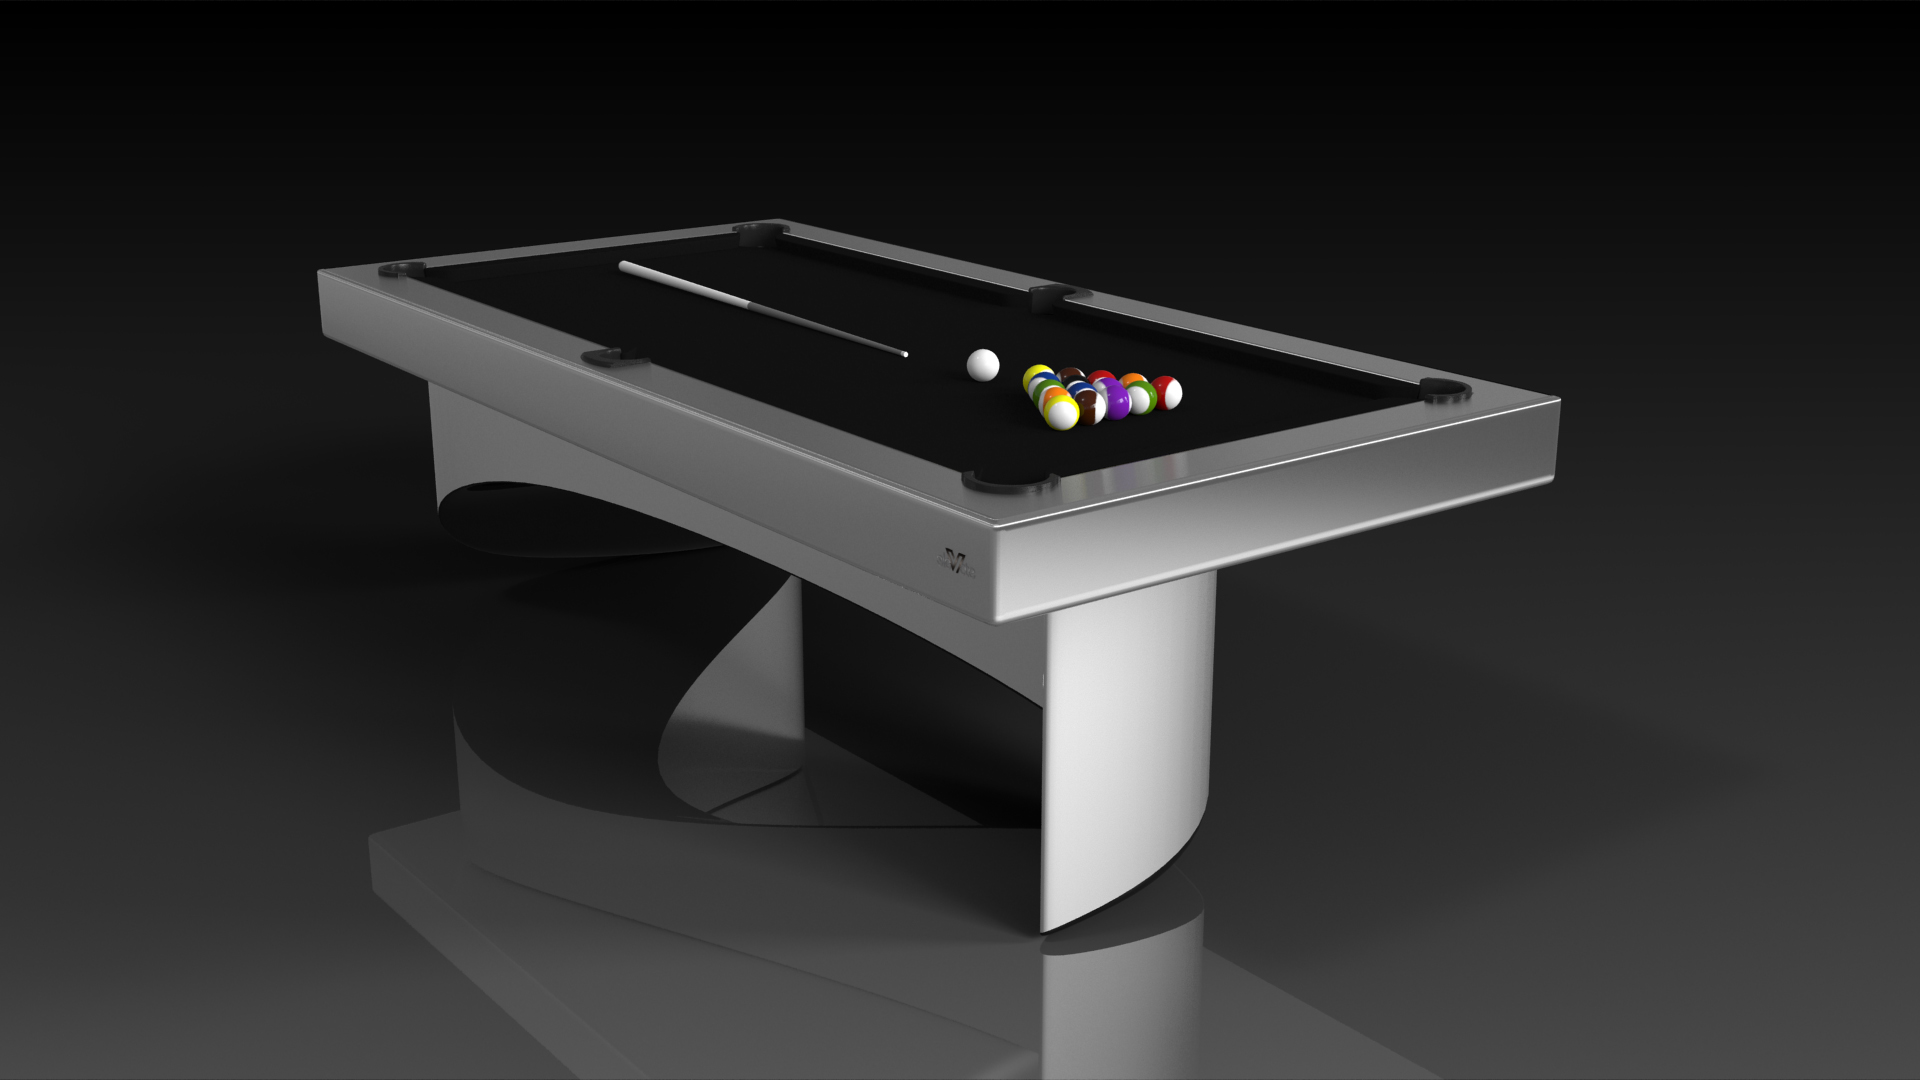 Elevate customs modern design ellipse pool table brushed aluminum 4